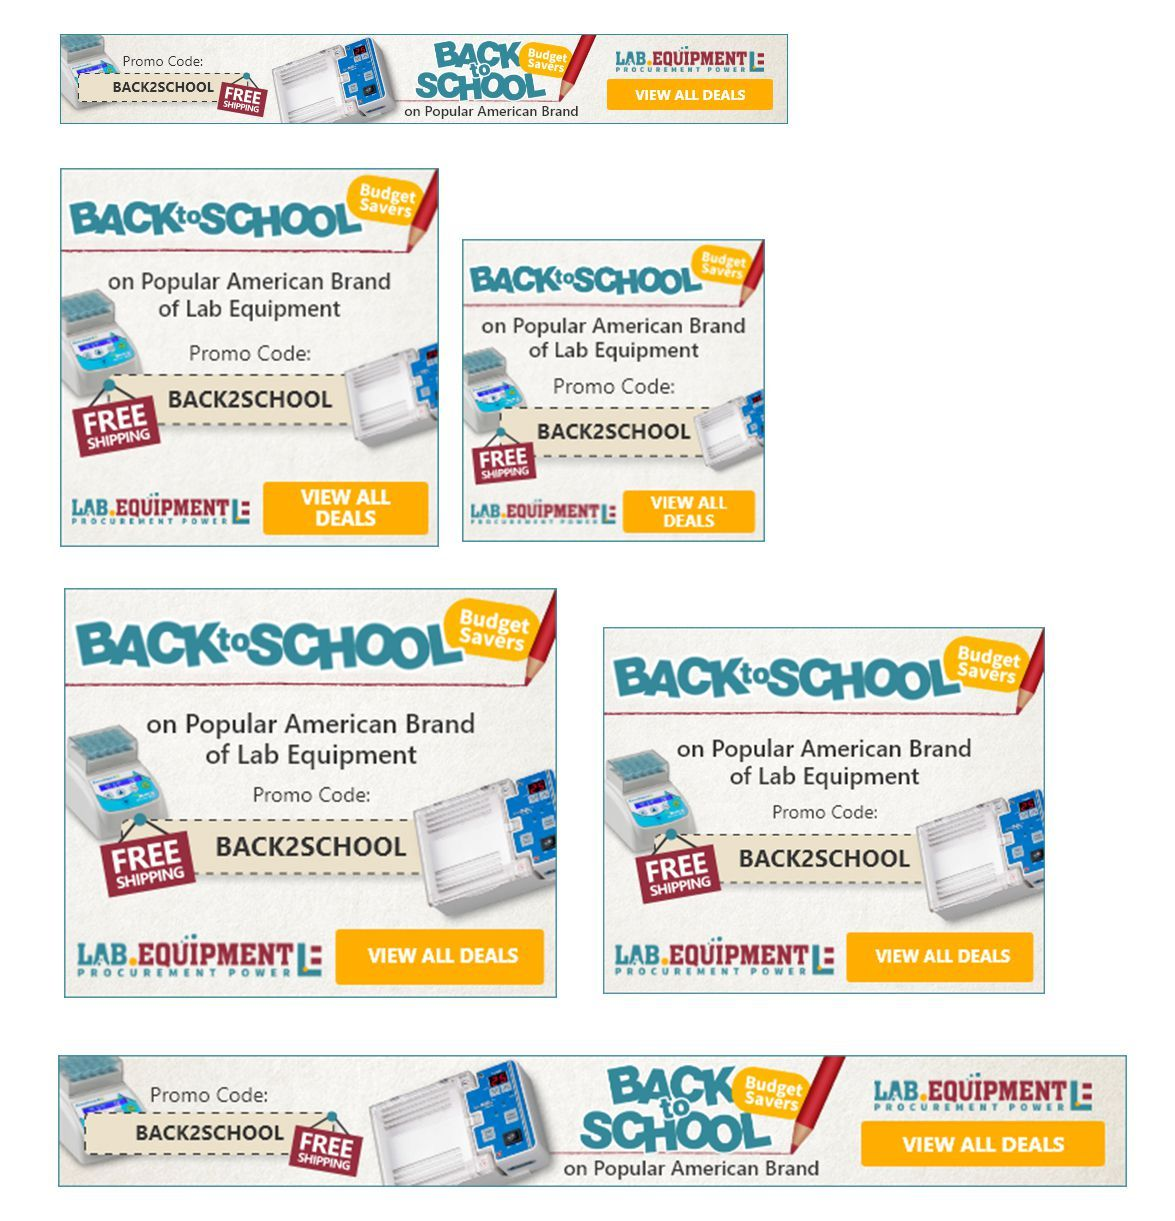 Back-to-School Budget Savers Promo GDN